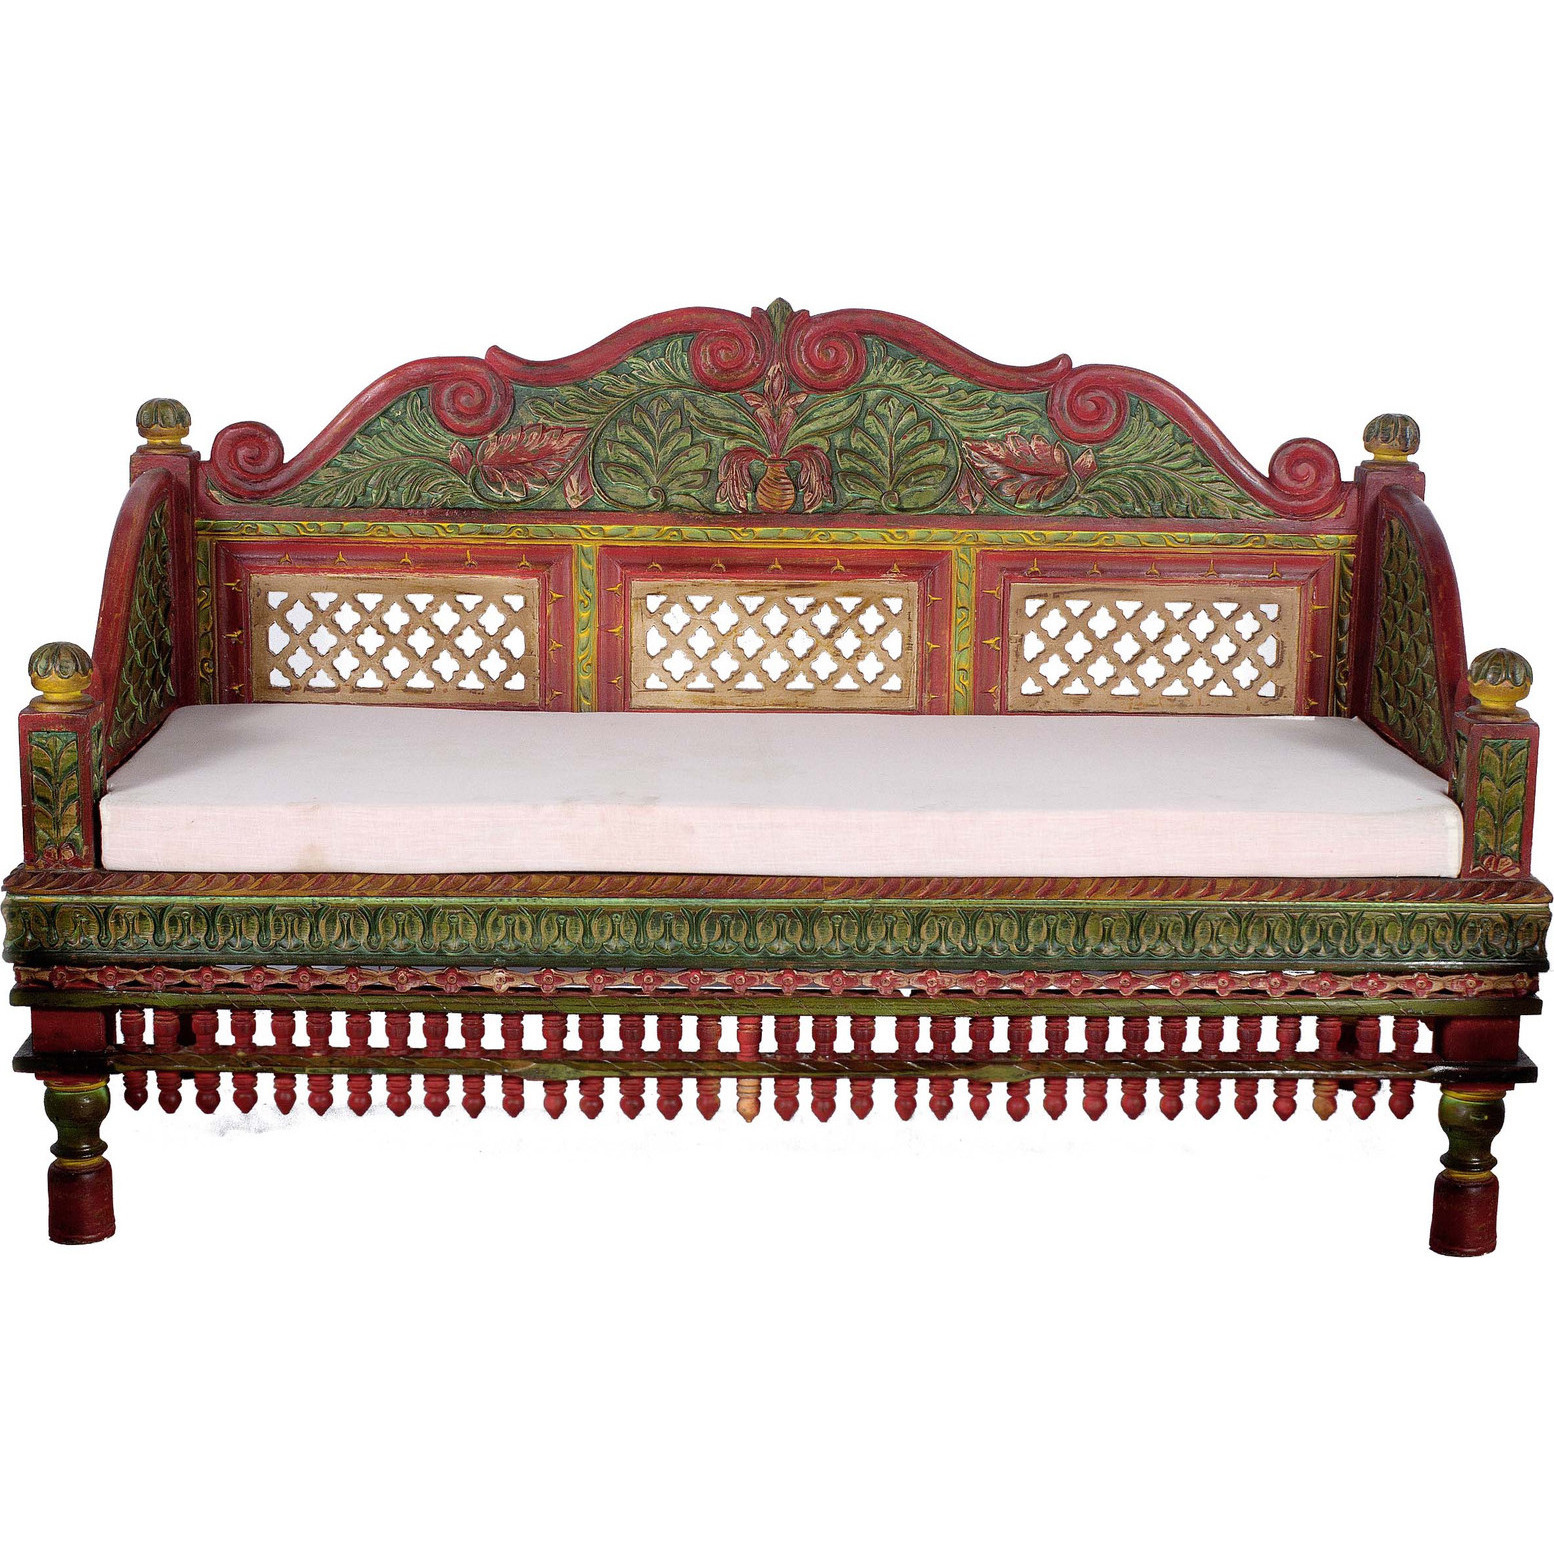 TEAK WOOD HAND PAINTED CARVED BACK TEAK WOOD SOFA SET   3 PCS